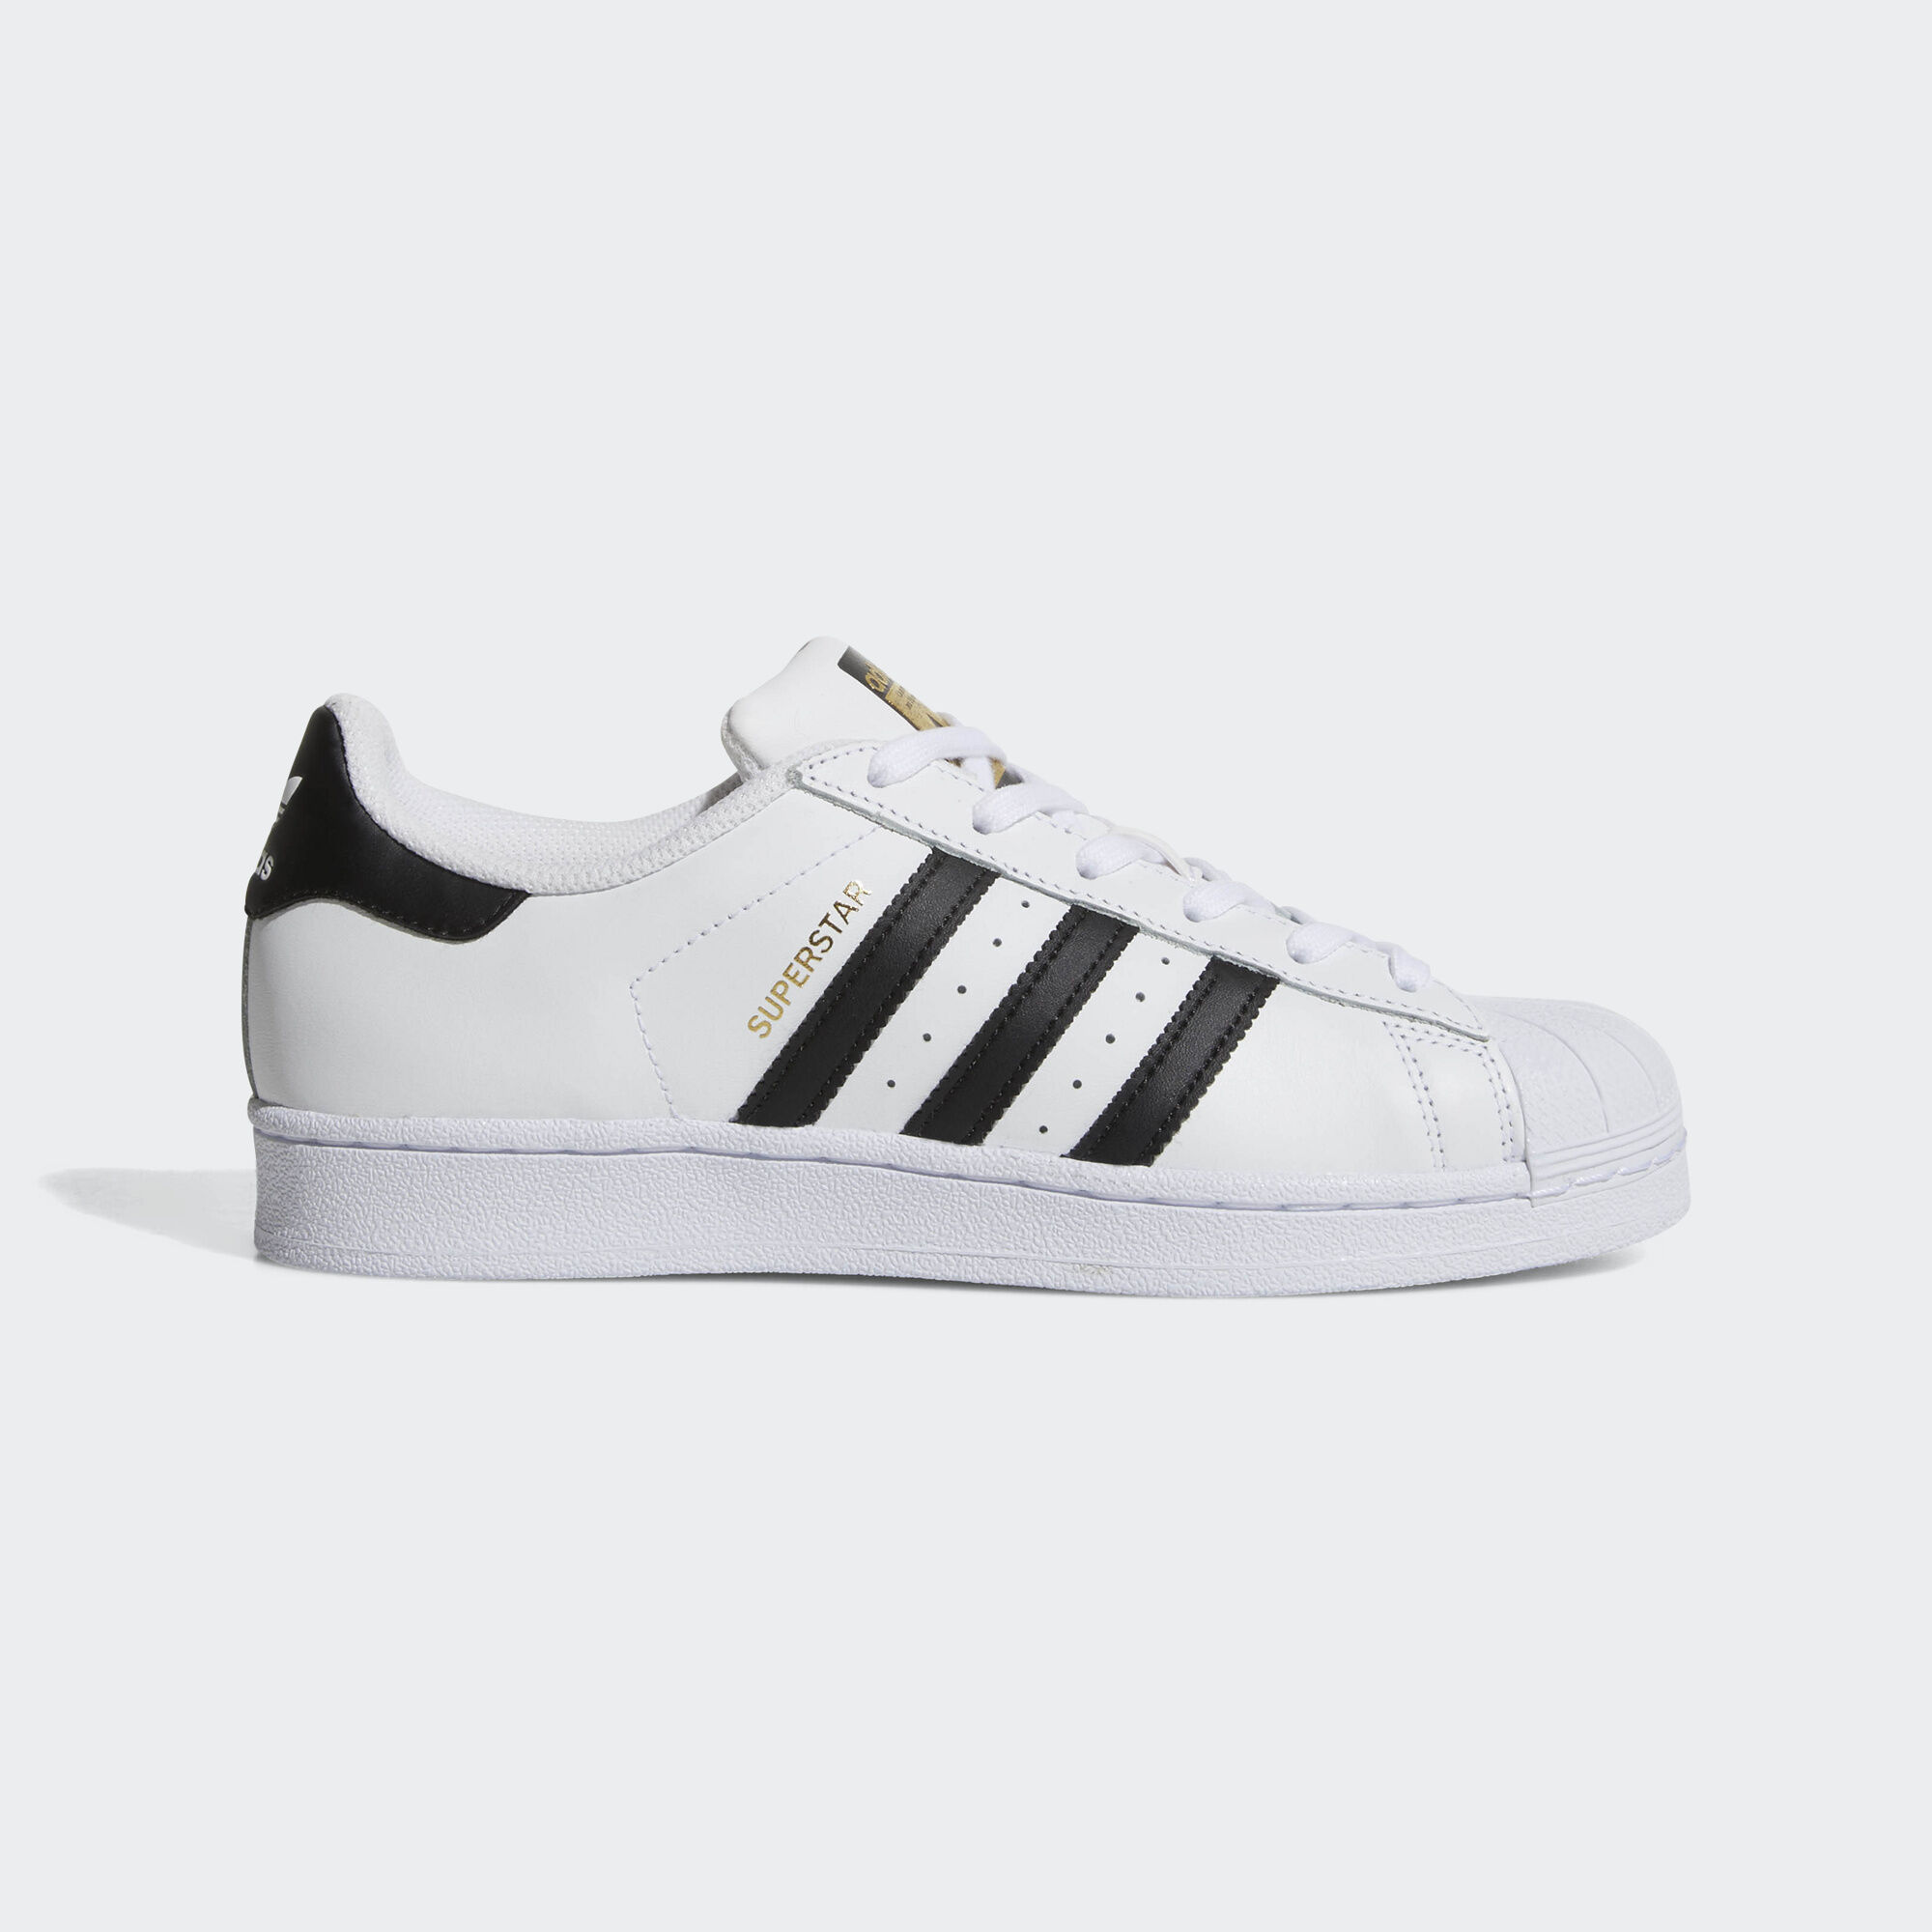 ADIDAS SKATEBOARDING SUPERSTAR VULC ADV crystal white